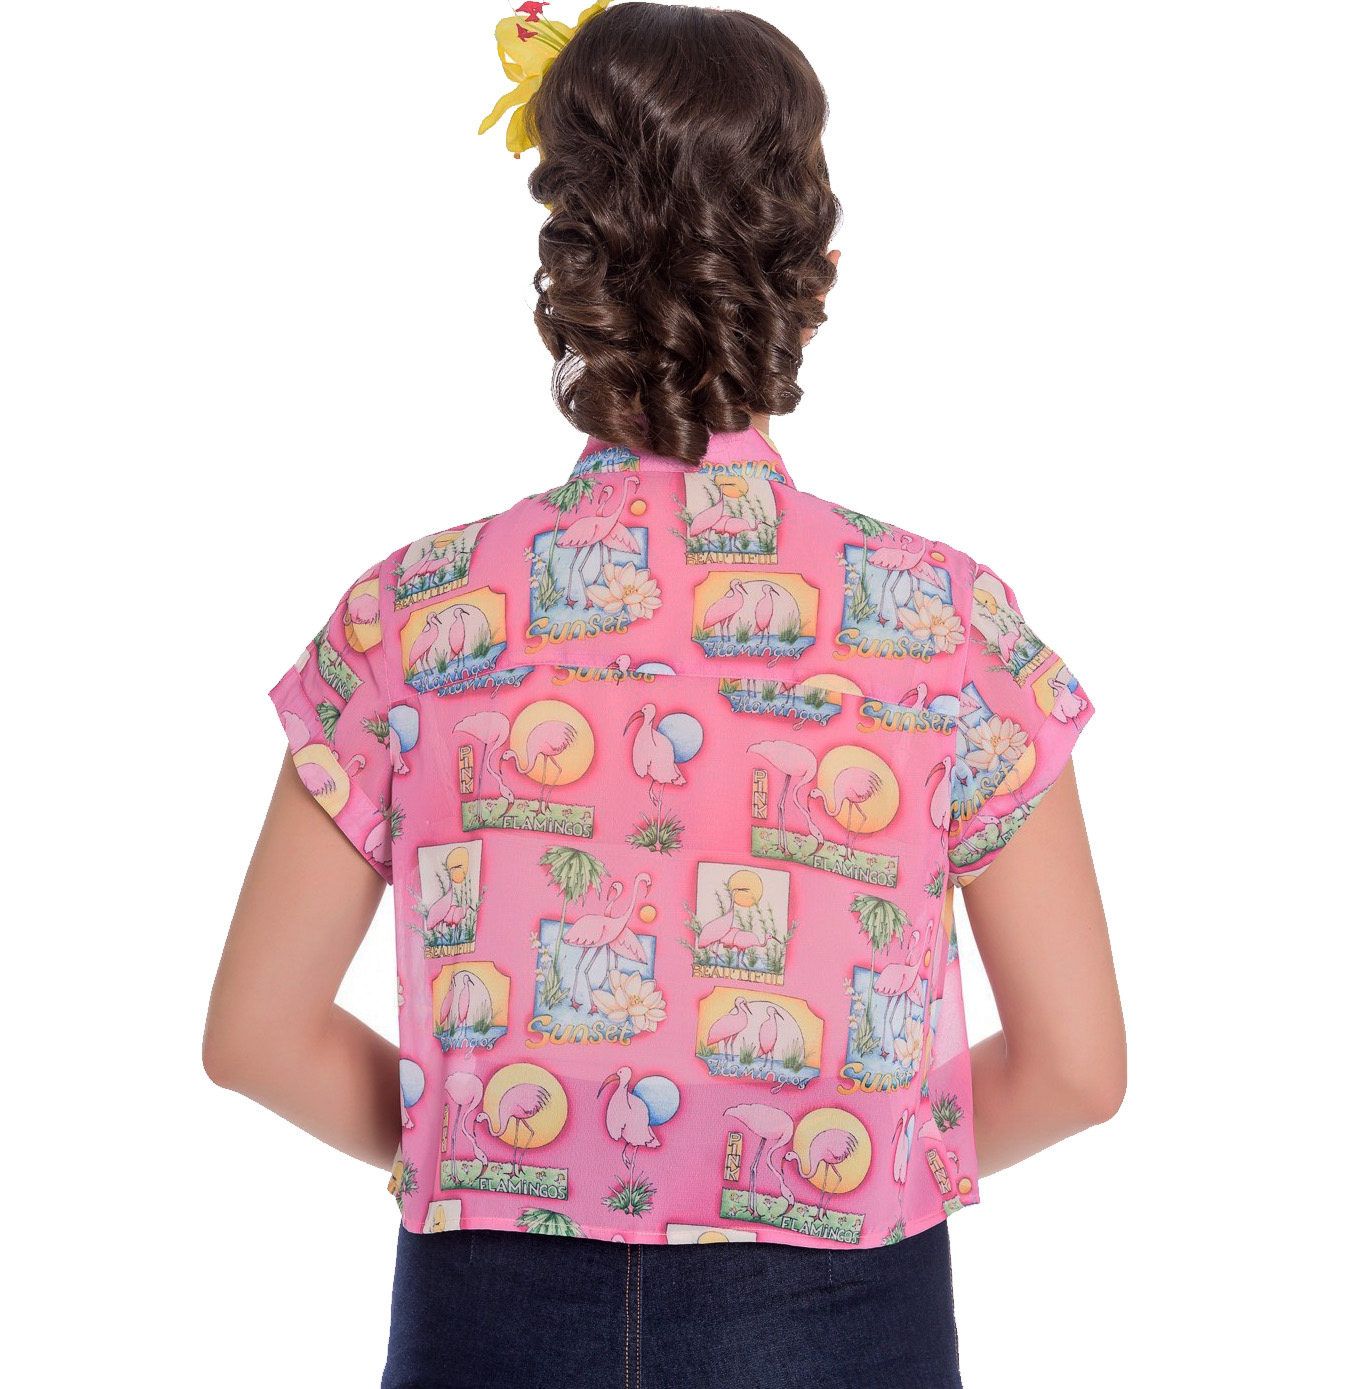 Hell-Bunny-50s-Retro-Top-Pink-Flamingo-MAXINE-Cropped-Blouse-Shirt-All-Sizes thumbnail 9